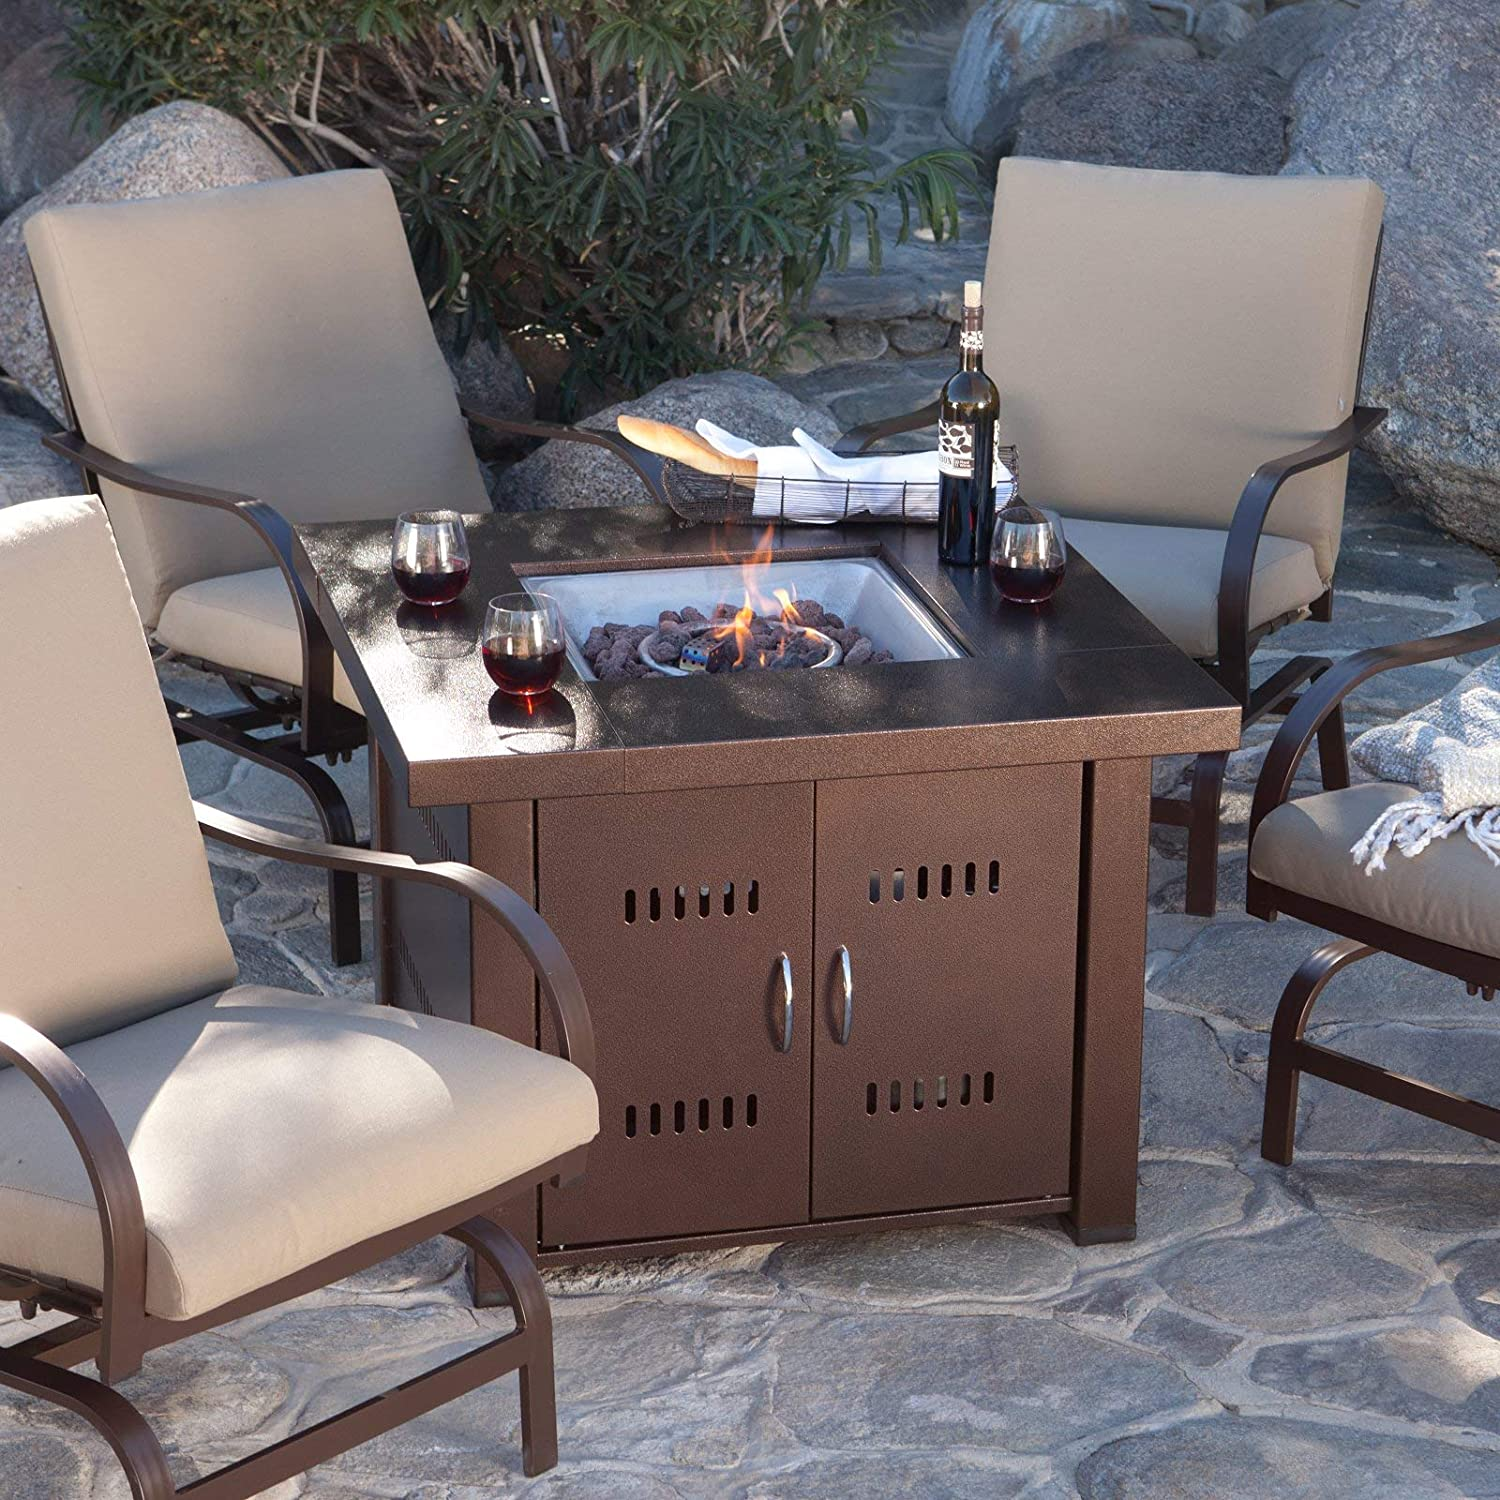 Glow Warm 14kw Outdoor Propane Gas Table Fire Pit (Bronze)